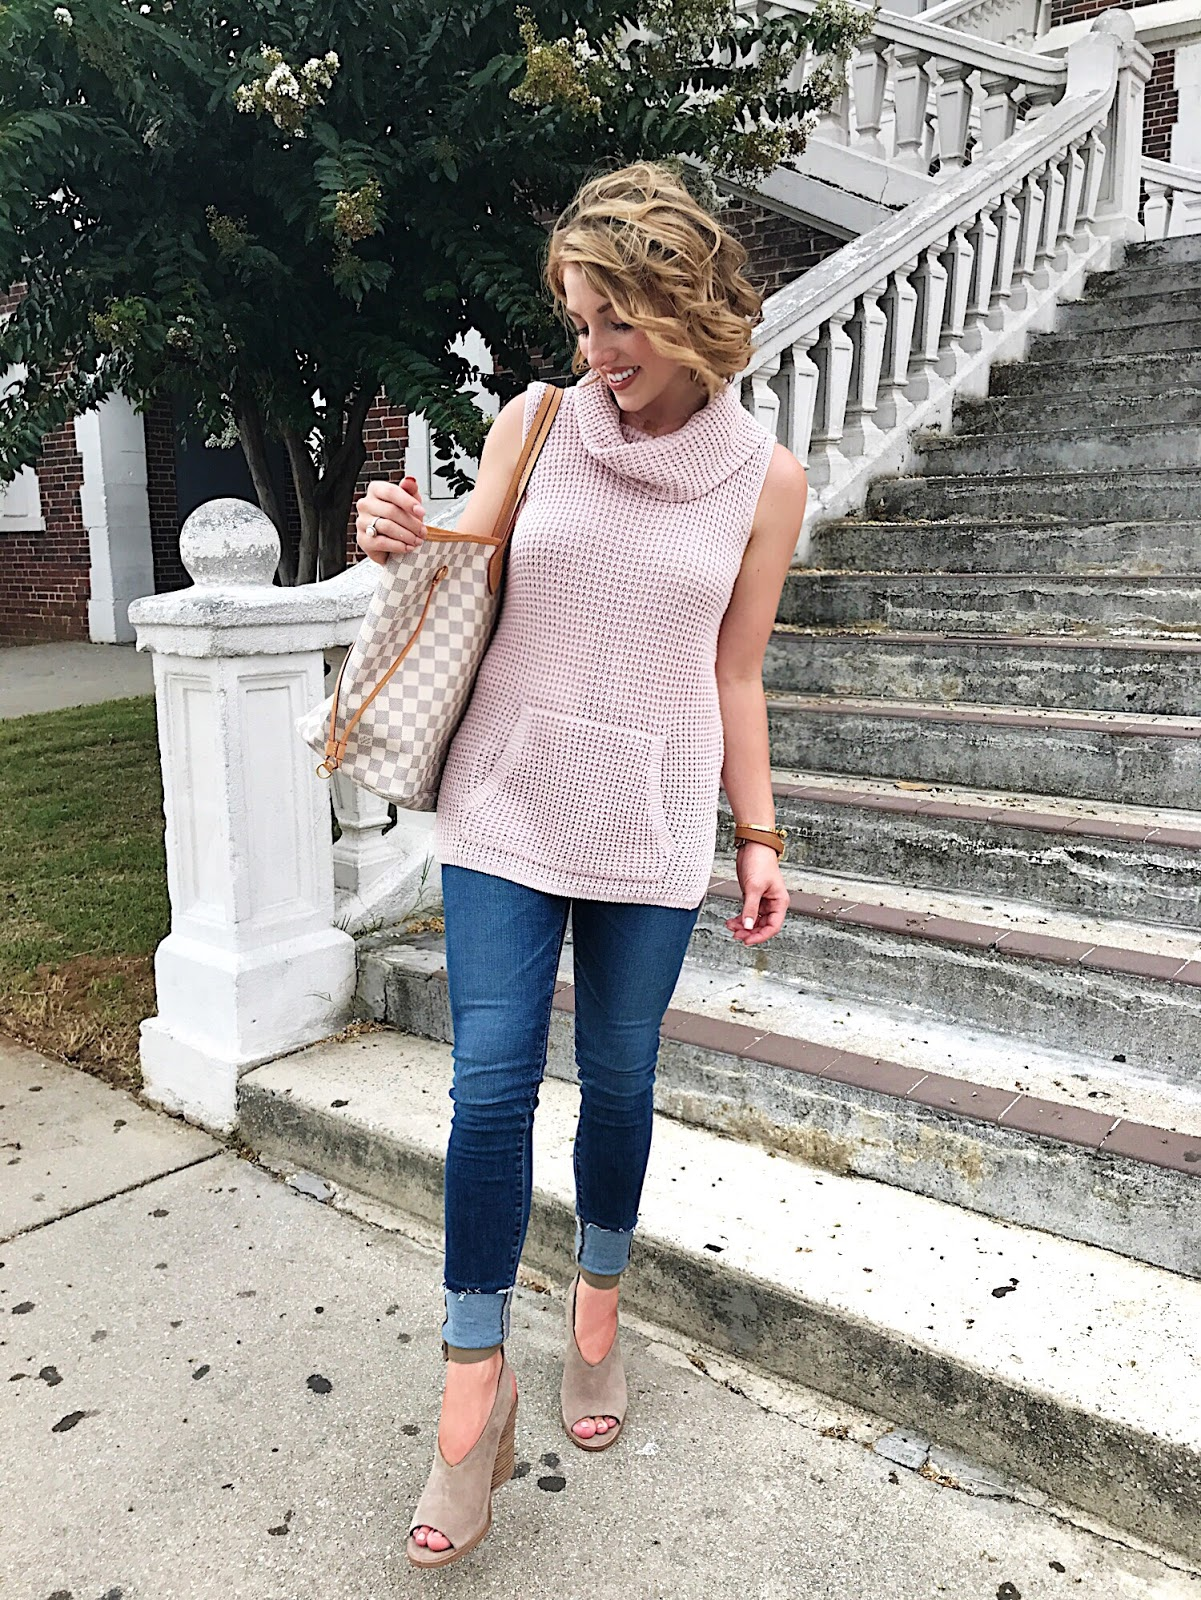 Sleeveless Sweater - Click through to see more on Something Delightful Blog.